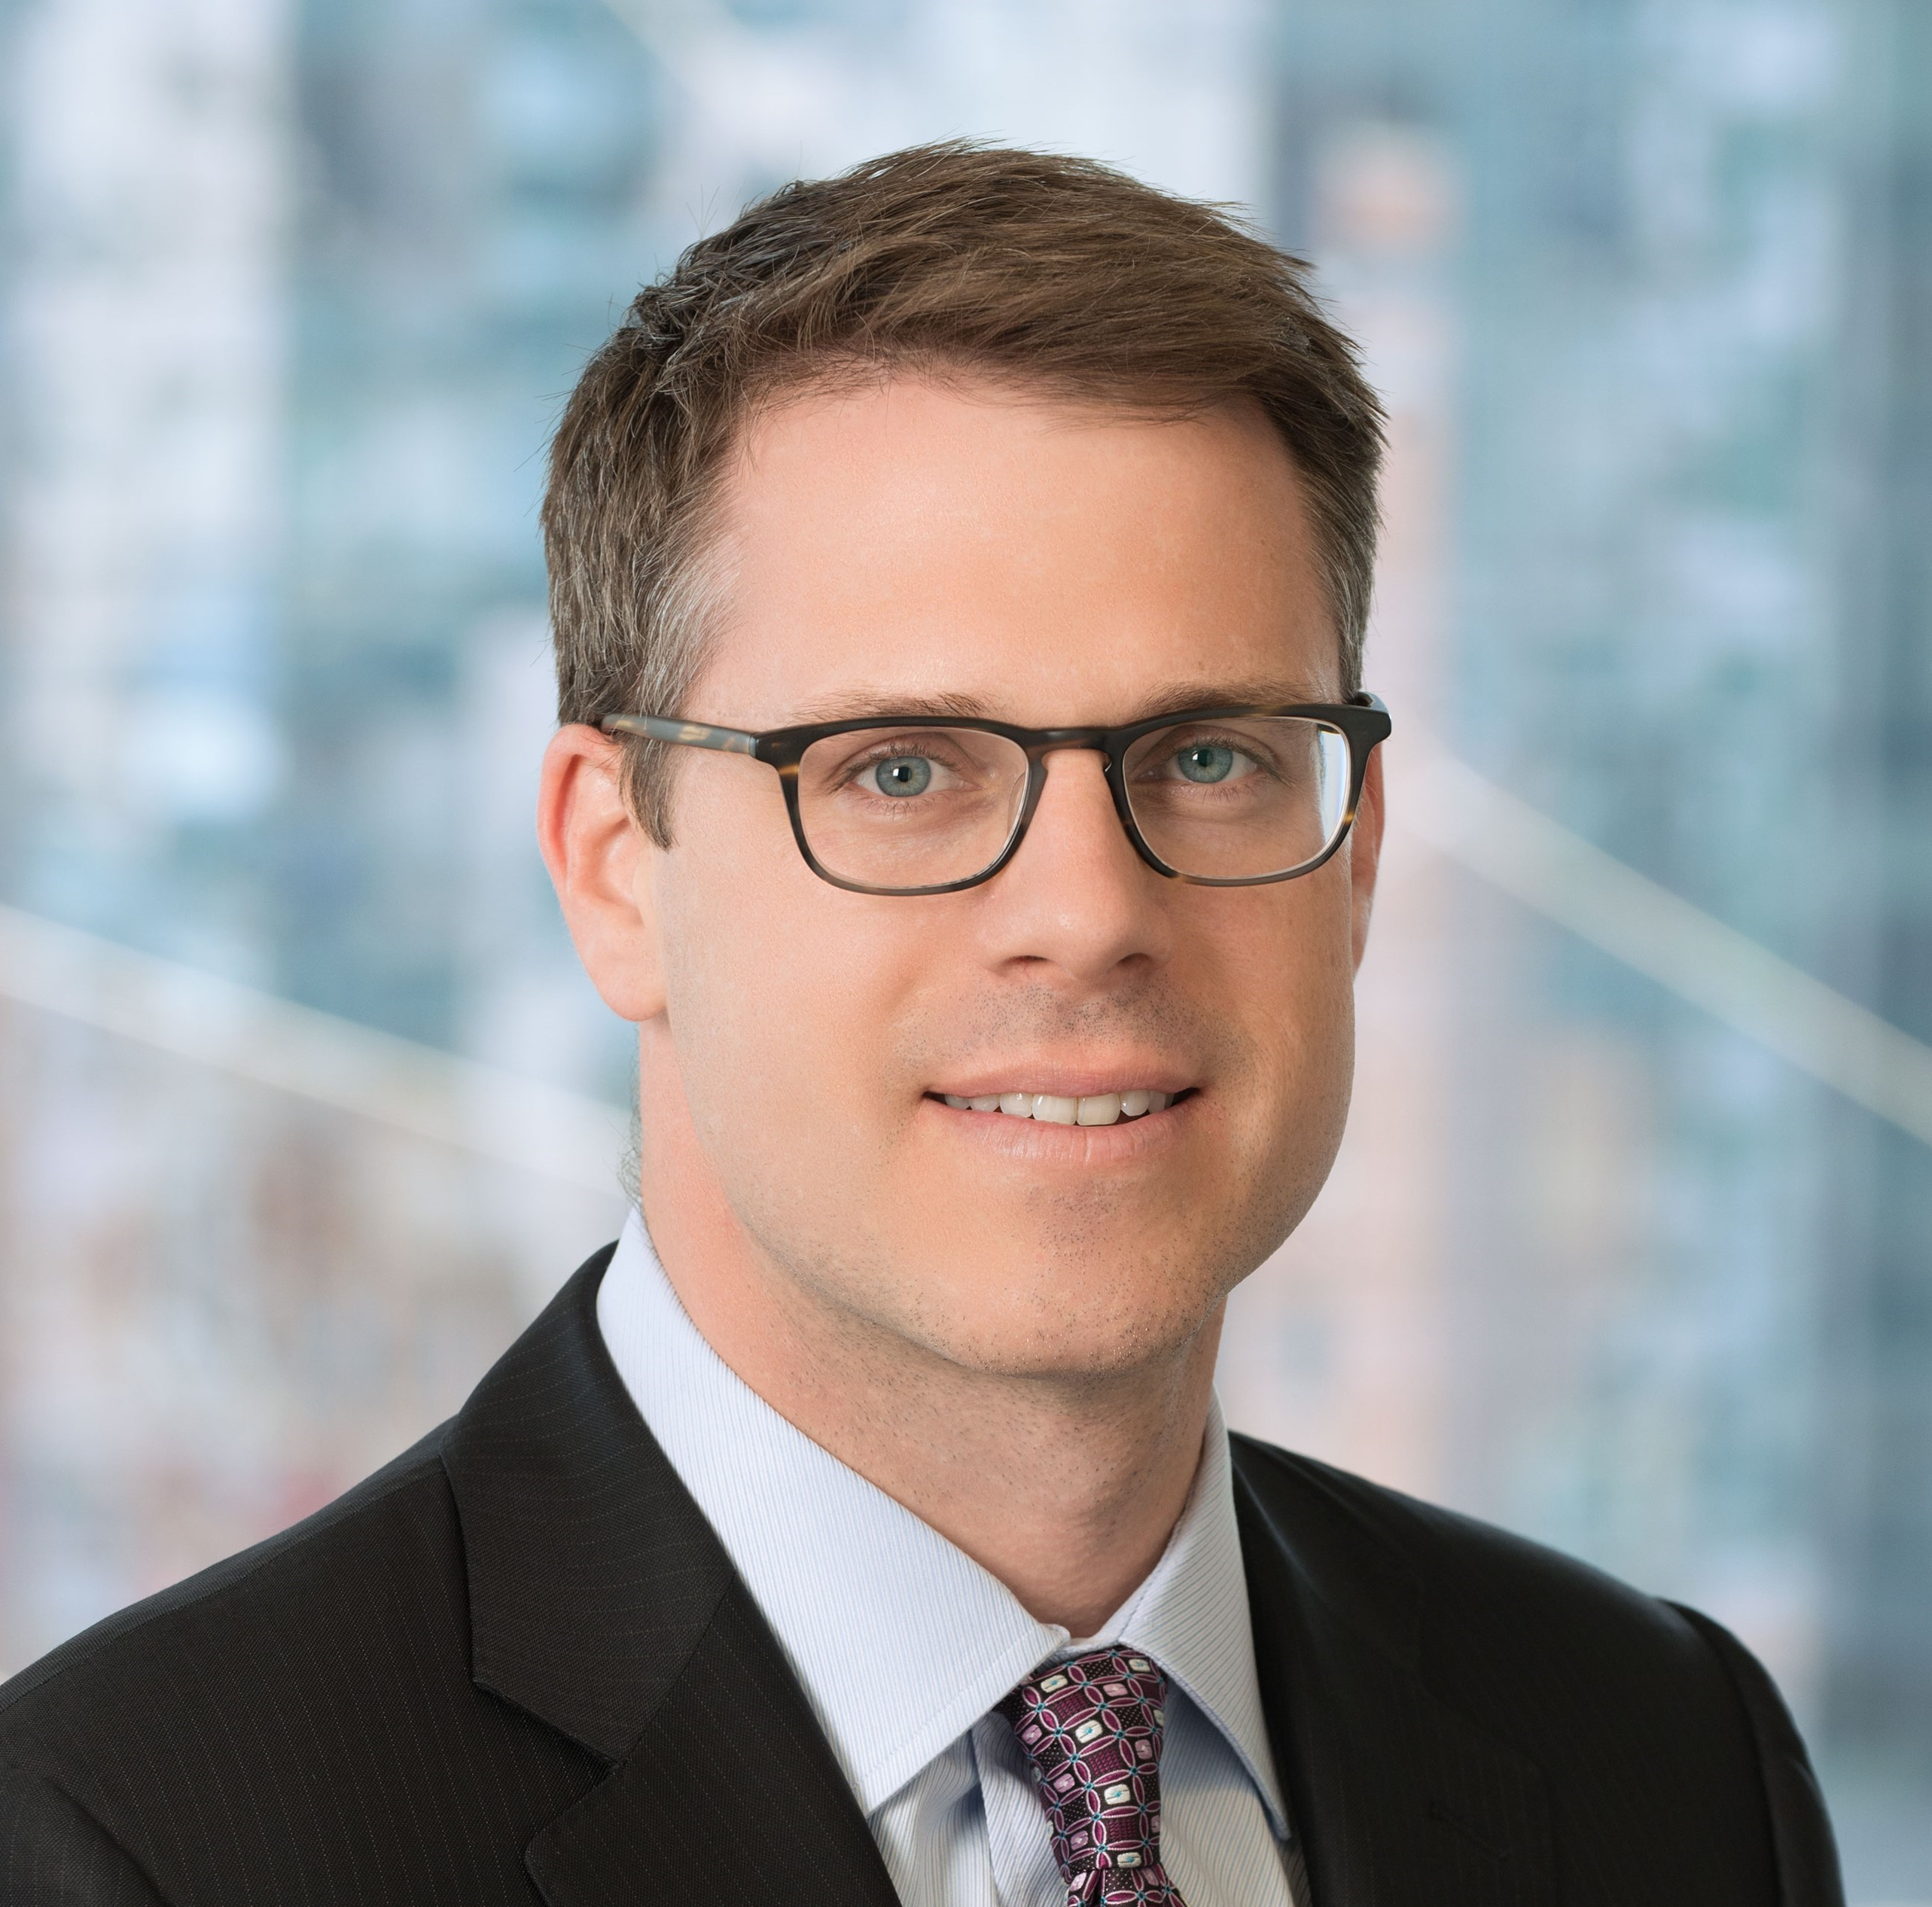 Tufts Names Craig W. Smith Chief Investment Officer